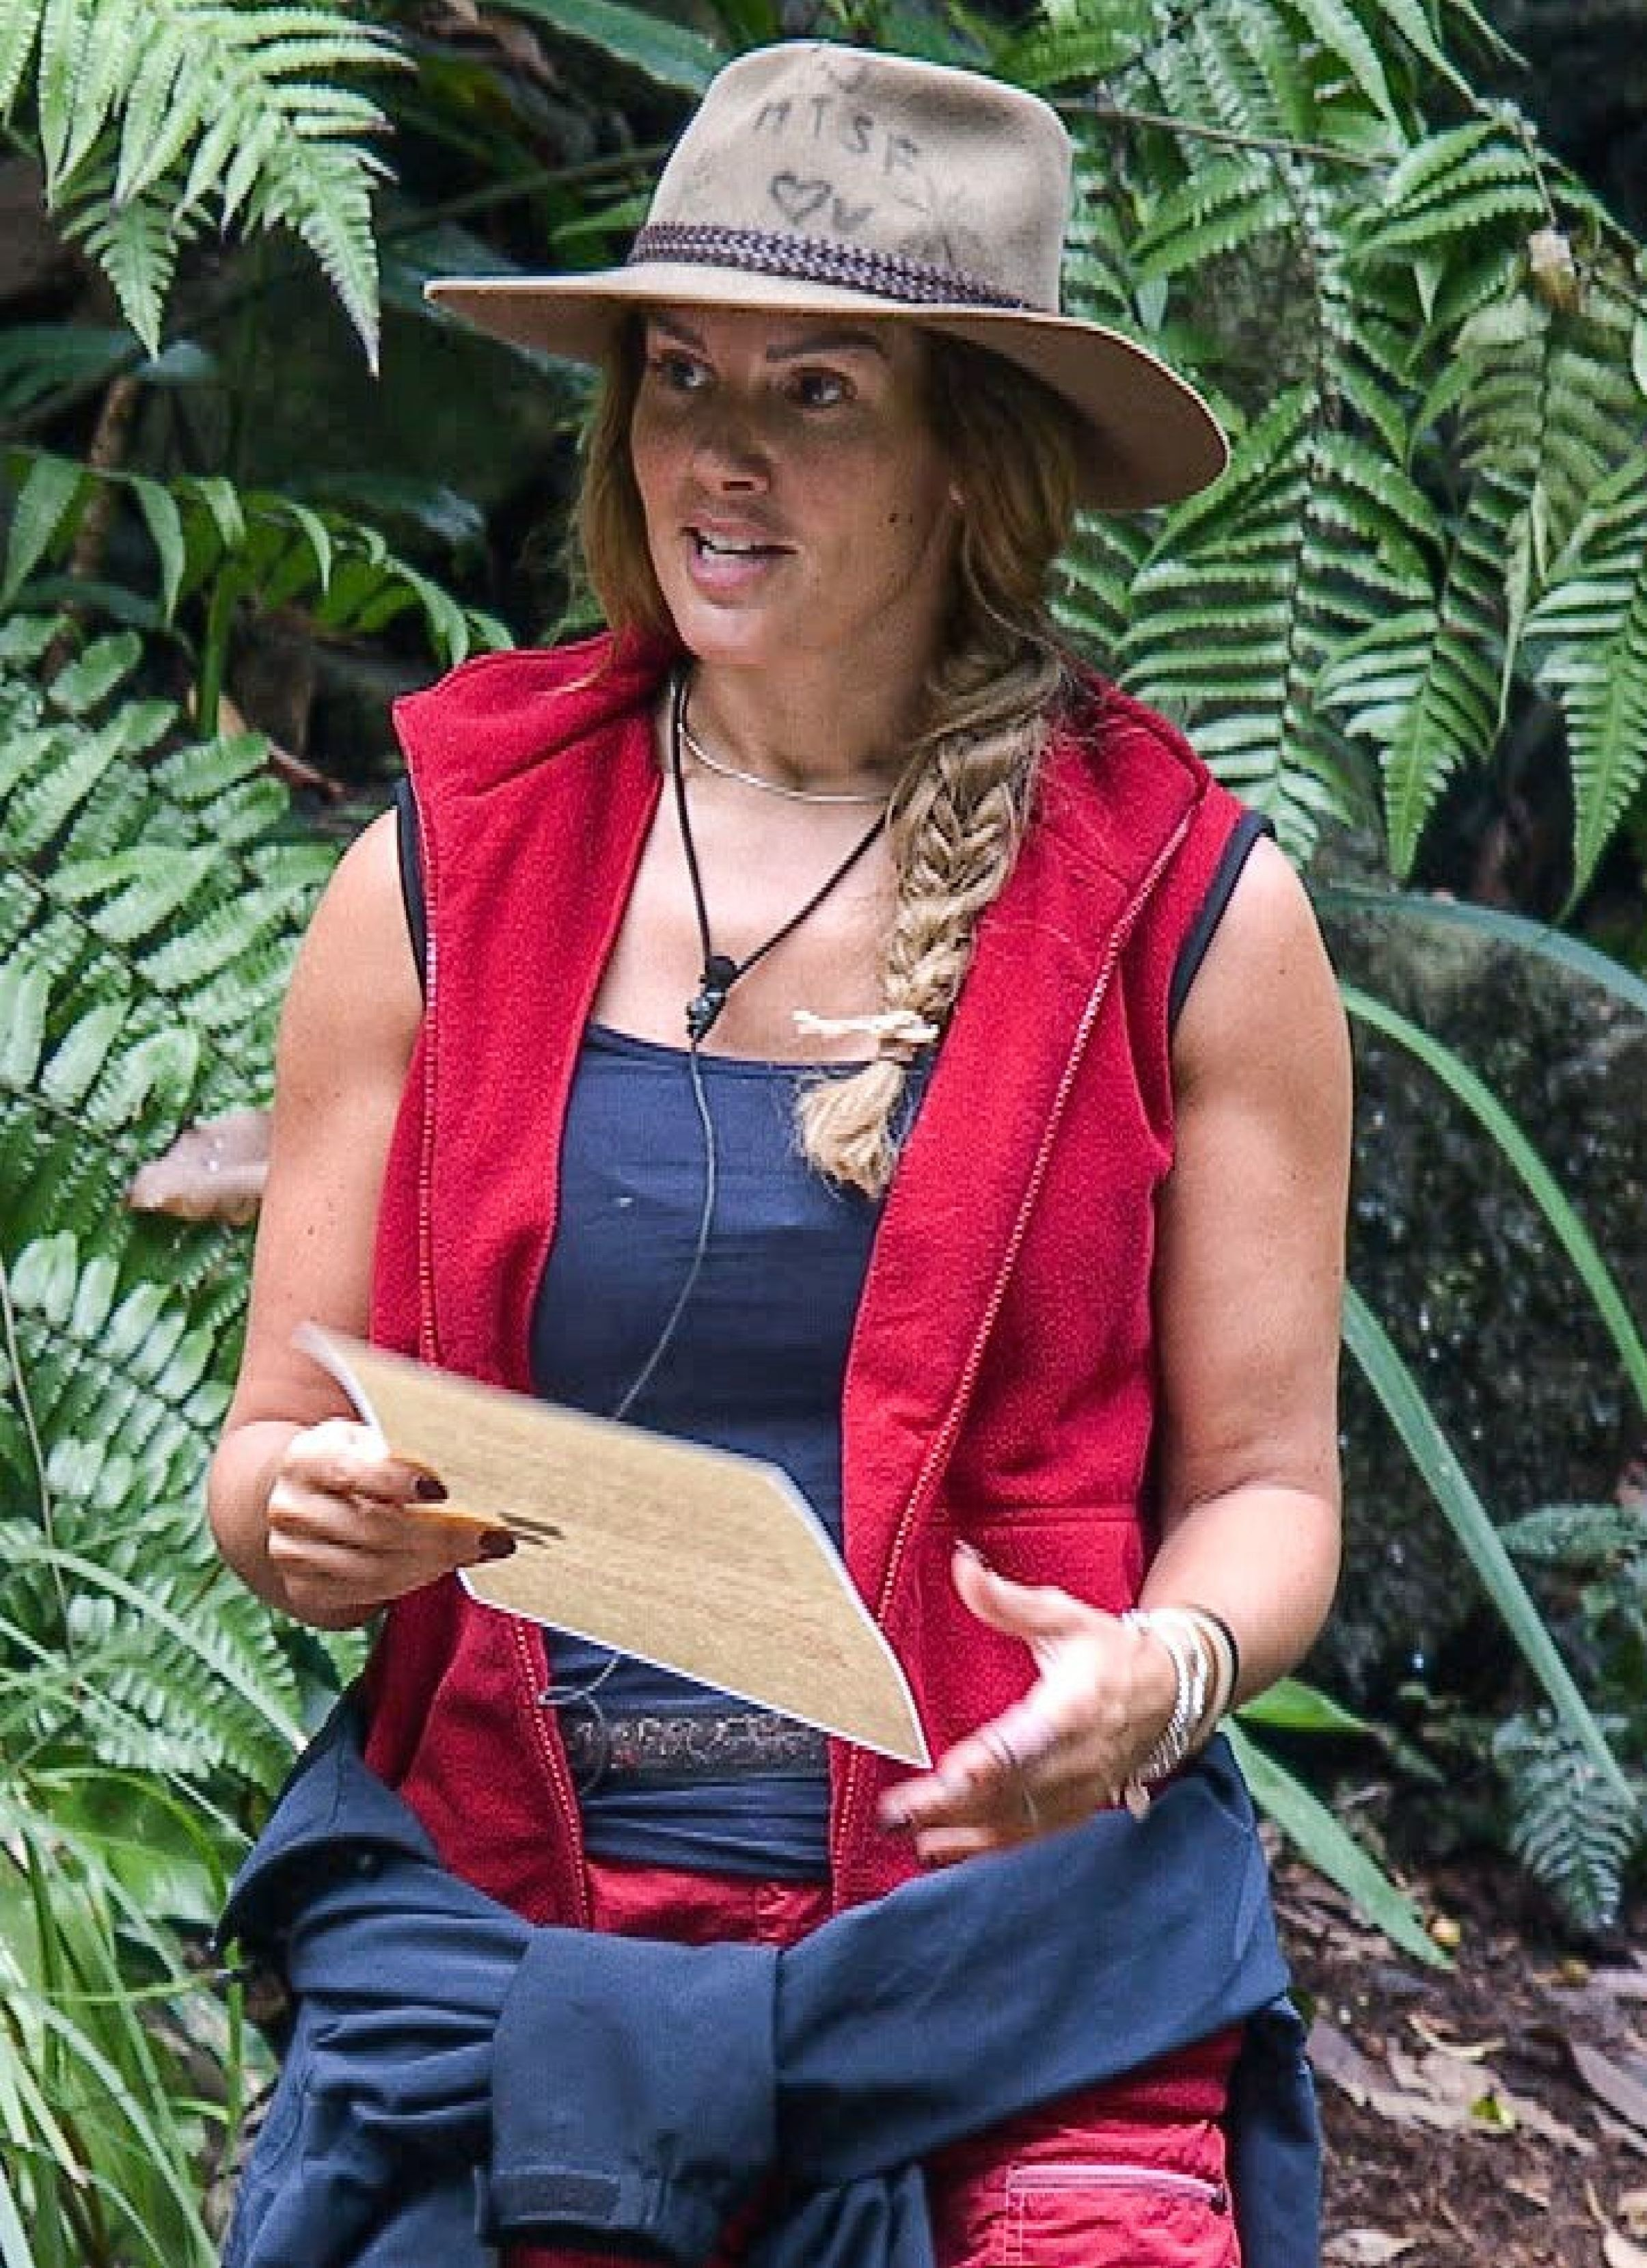 REVEALED: Ex-'I'm A Celebrity' Star Rebekah Vardy Claims Show Is More 'Edited' Than You Might